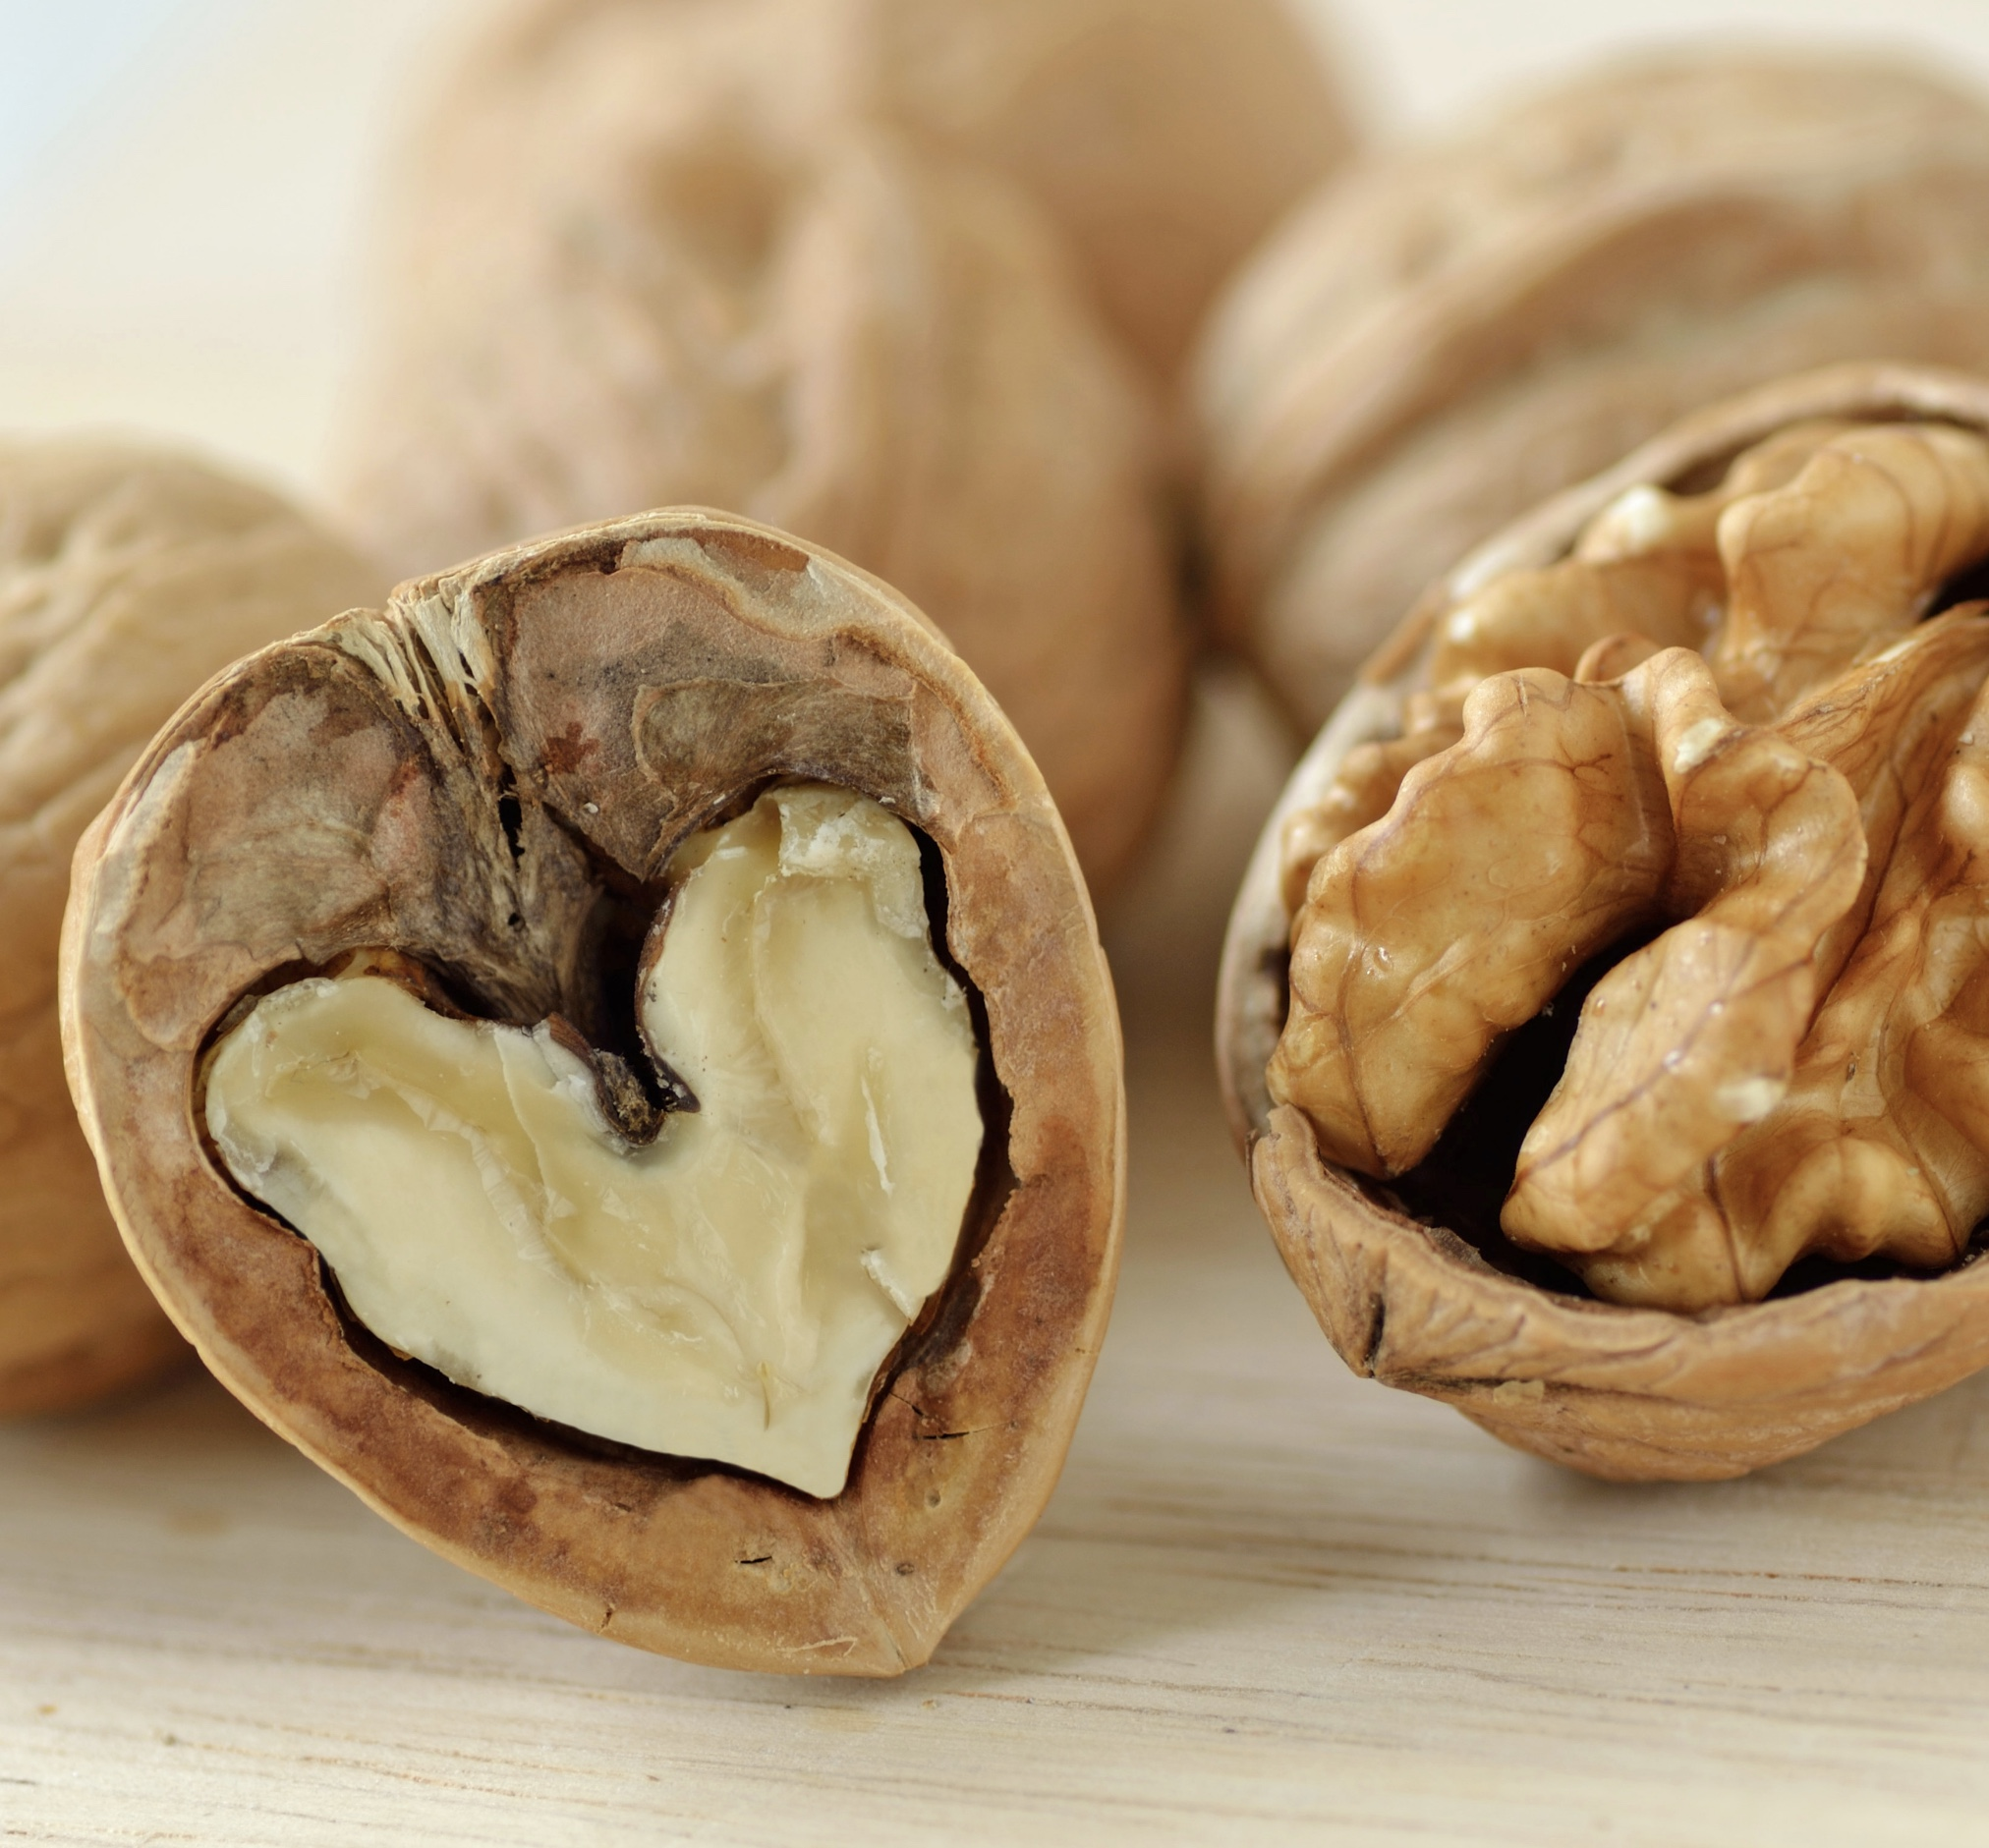 Unroasted and unsalted walnuts